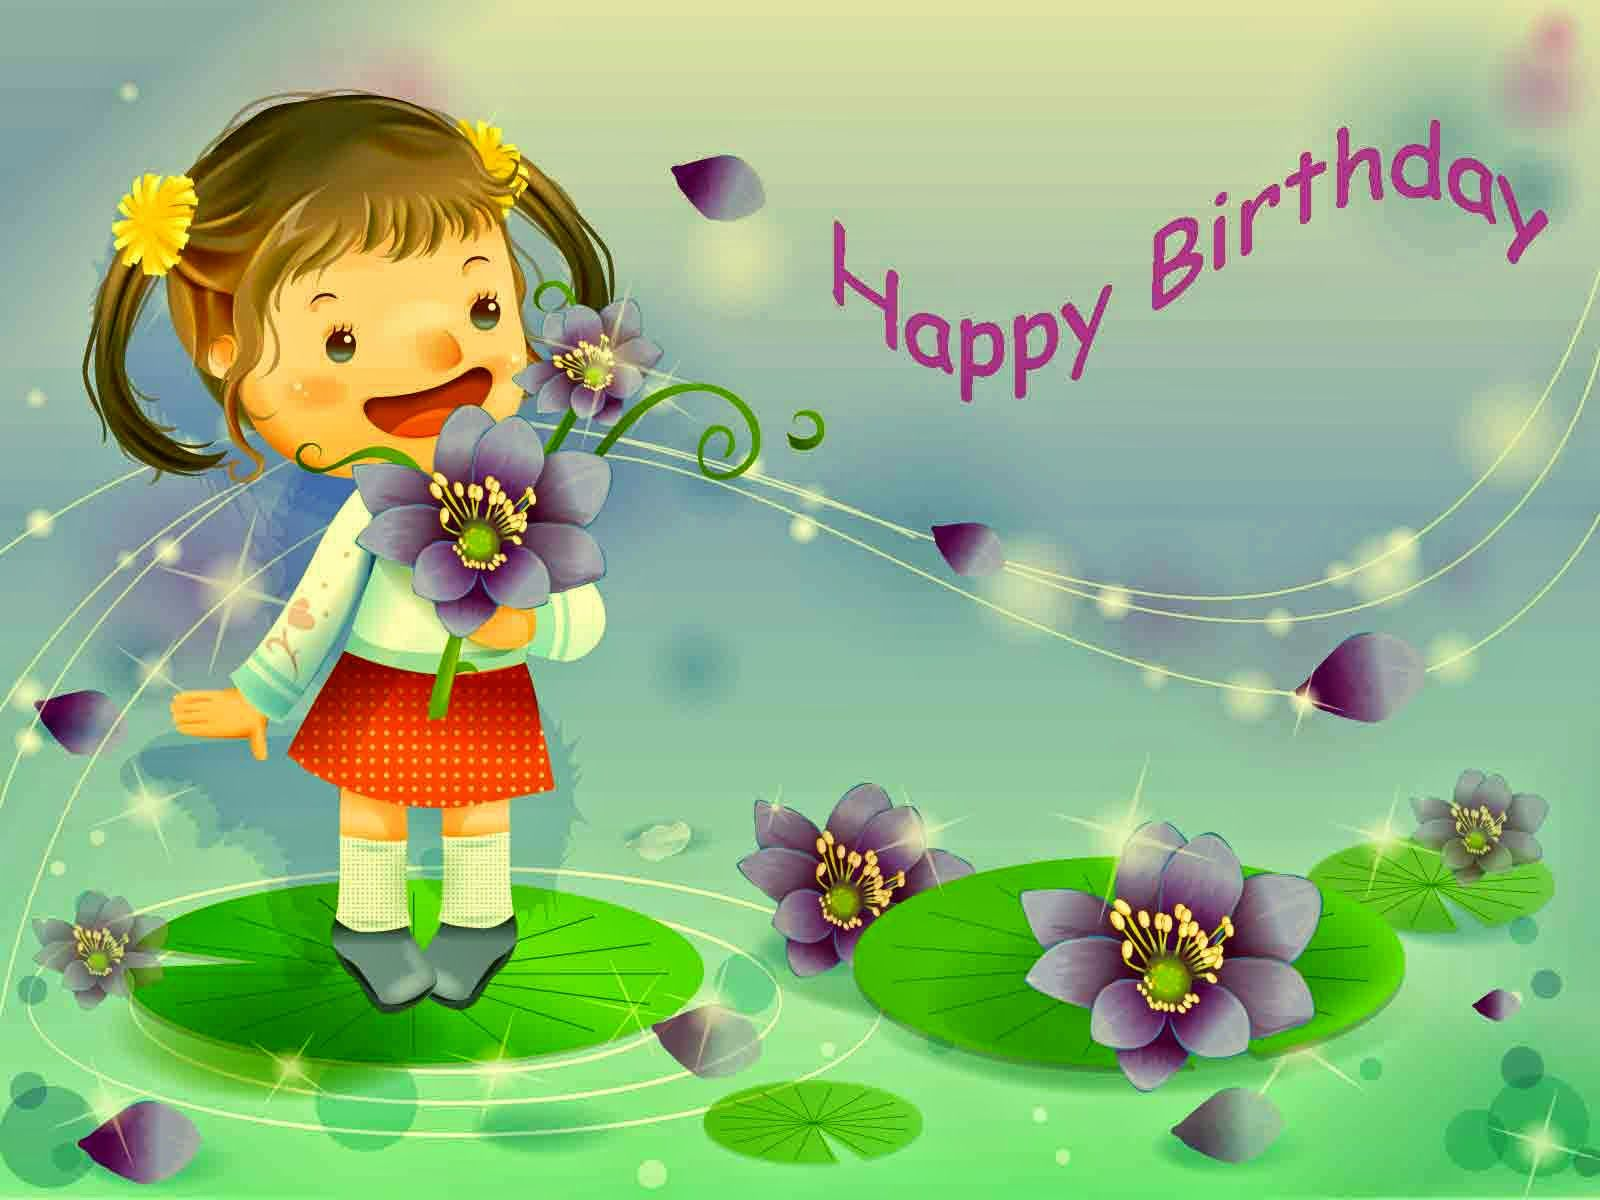 Musical birthday greetings for facebook previous card next card musical birthday greetings for facebook previous card next card m4hsunfo Gallery